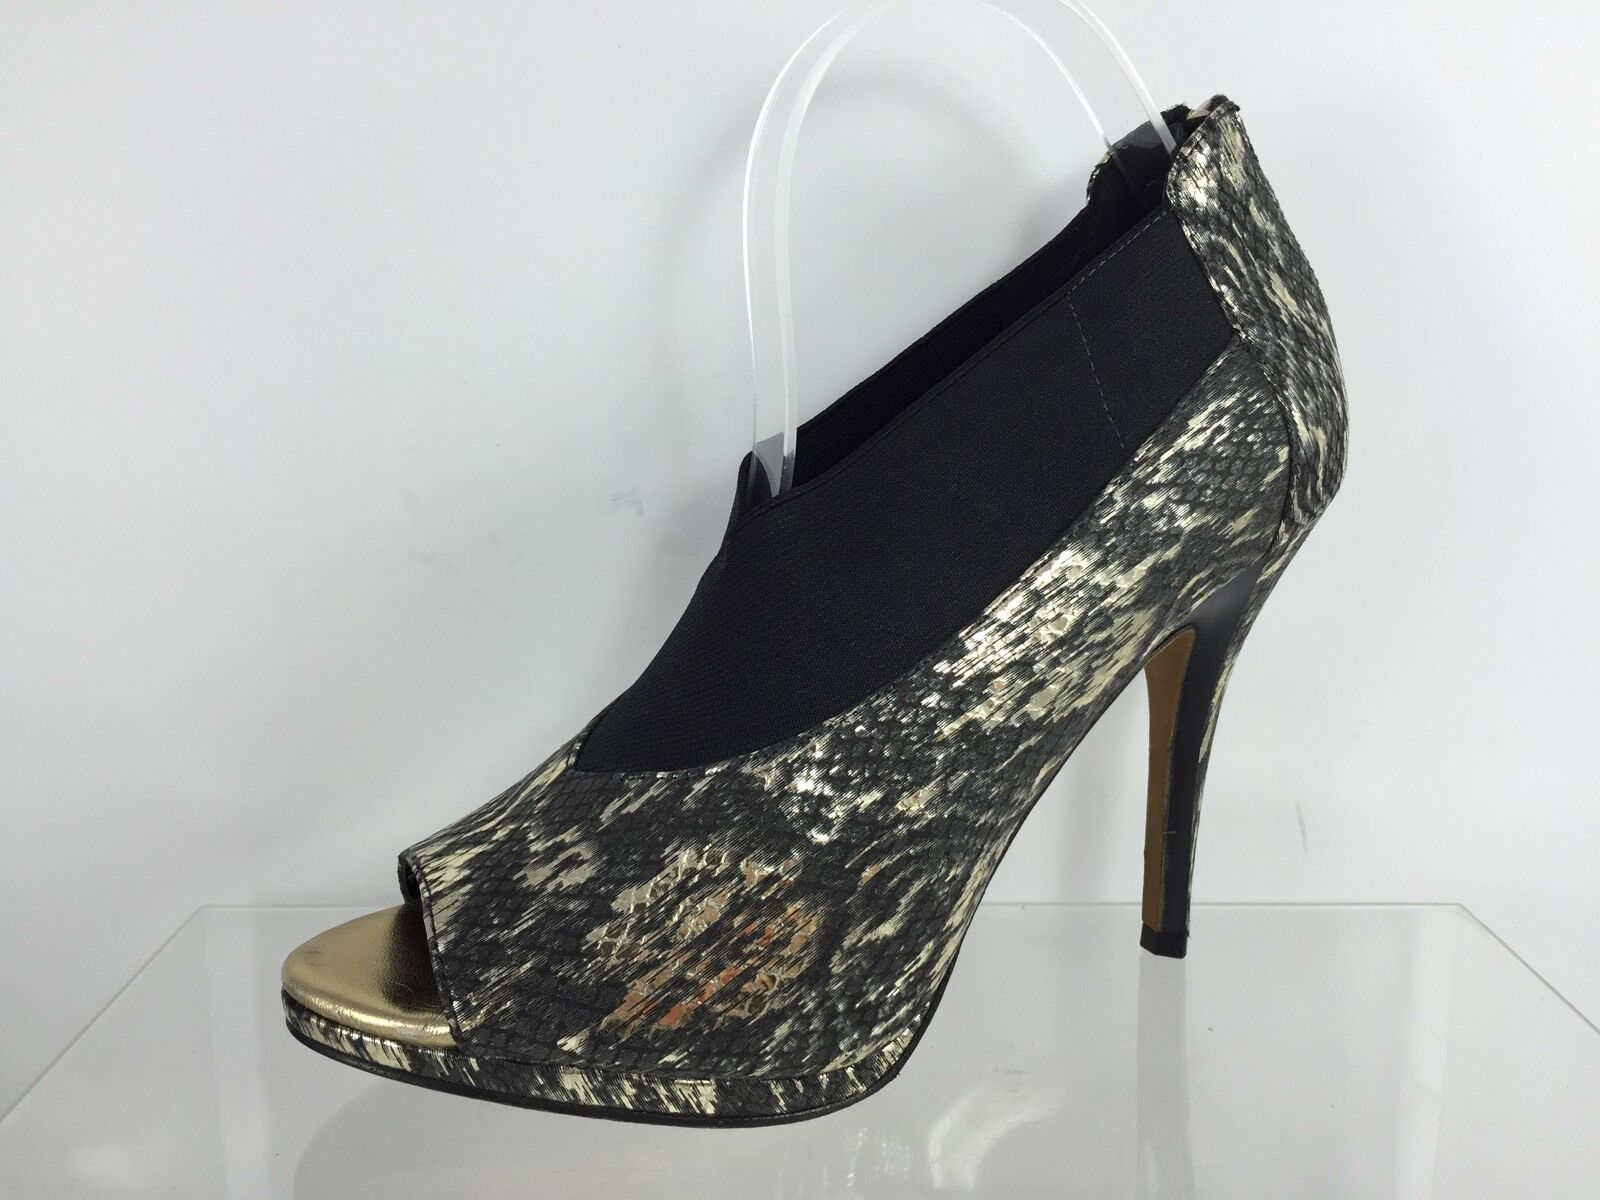 Donald J Pliner Womens Black/Gold Heels 9.5 9.5 9.5 M fcdd72